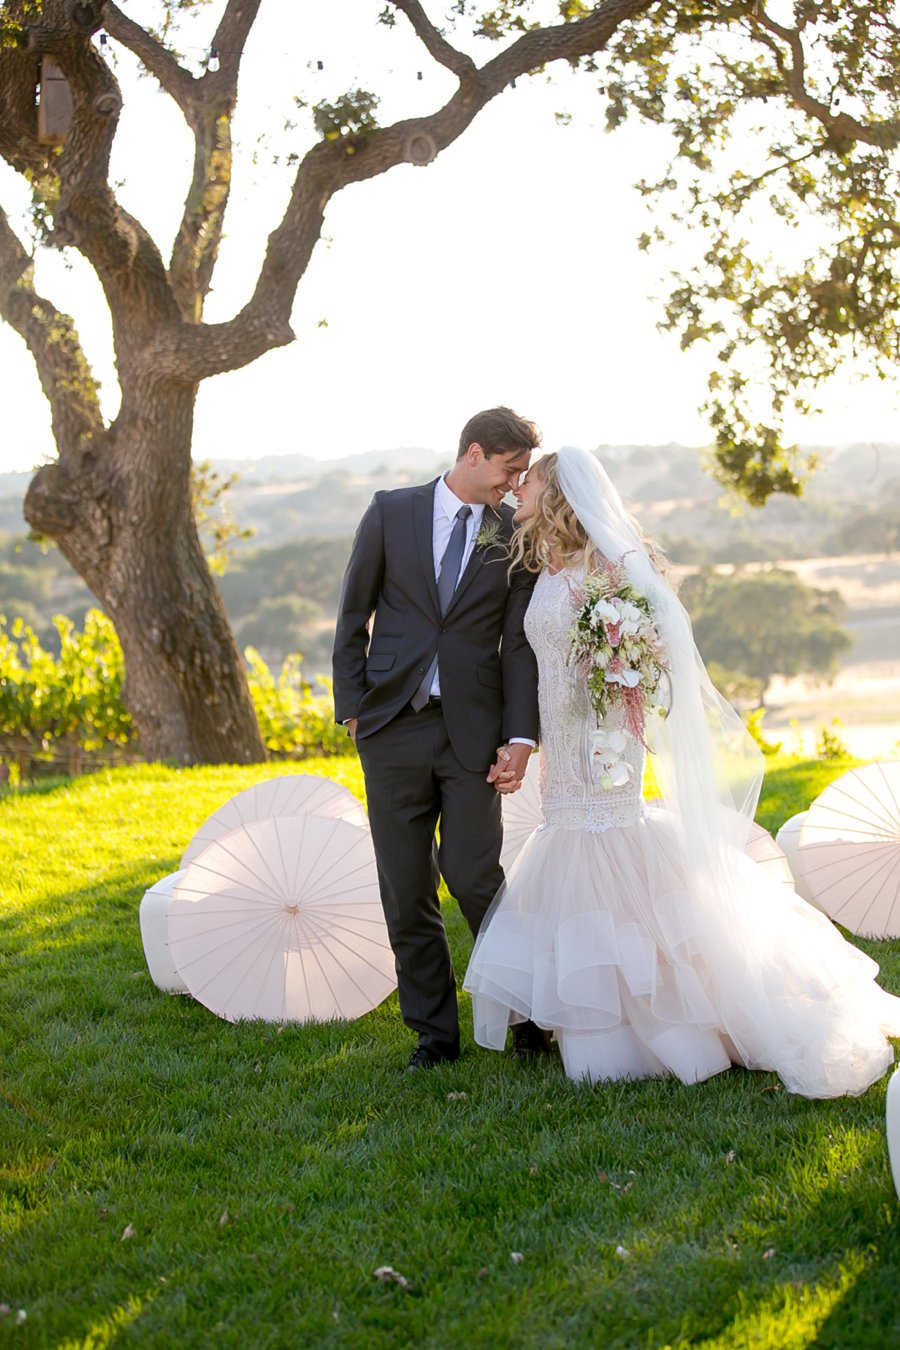 STOLPMANN VILLA AND VINEYARDS | LOS OLIVOS WEDDING PHOTOGRAPHER CHRIS HOLT PHOTOGRAPHY_050.jpg